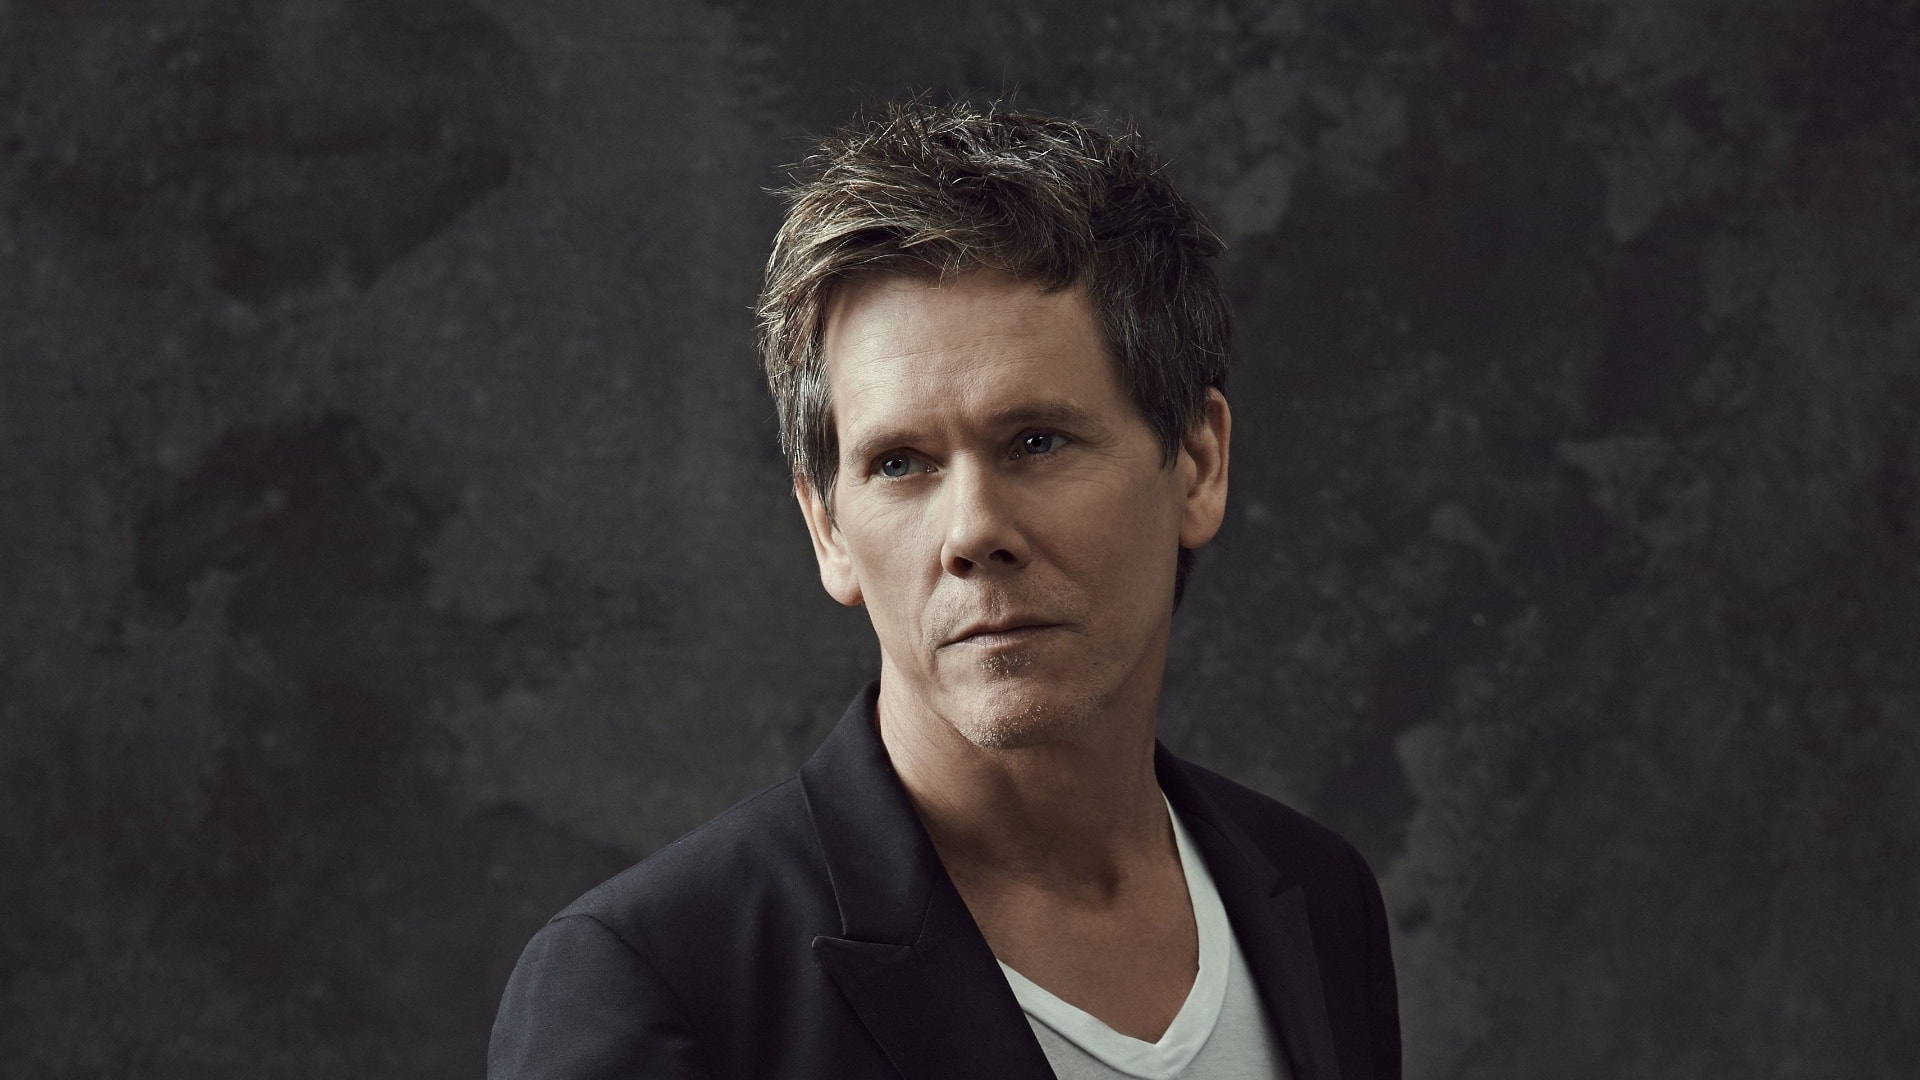 Kevin Bacon Full hd wallpapers